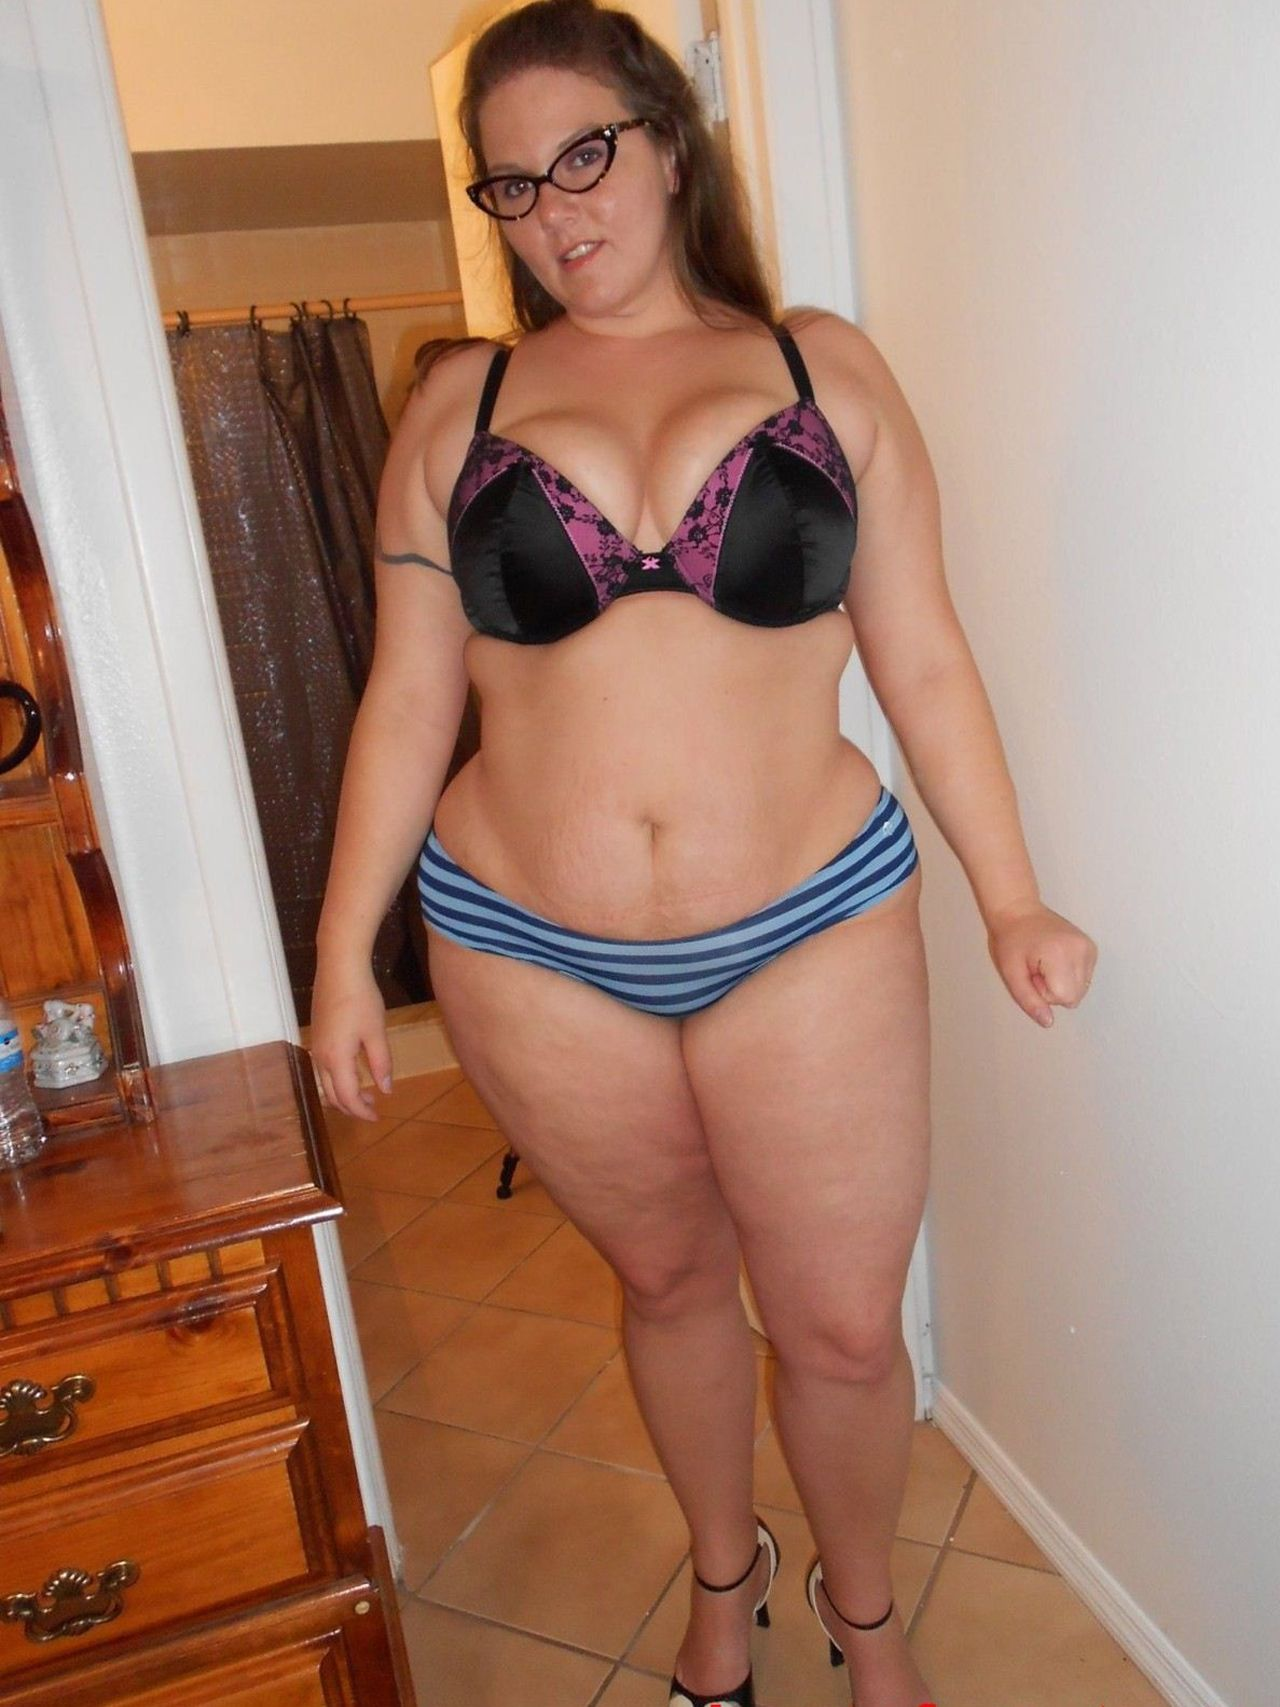 Big amateur voluptuous women good